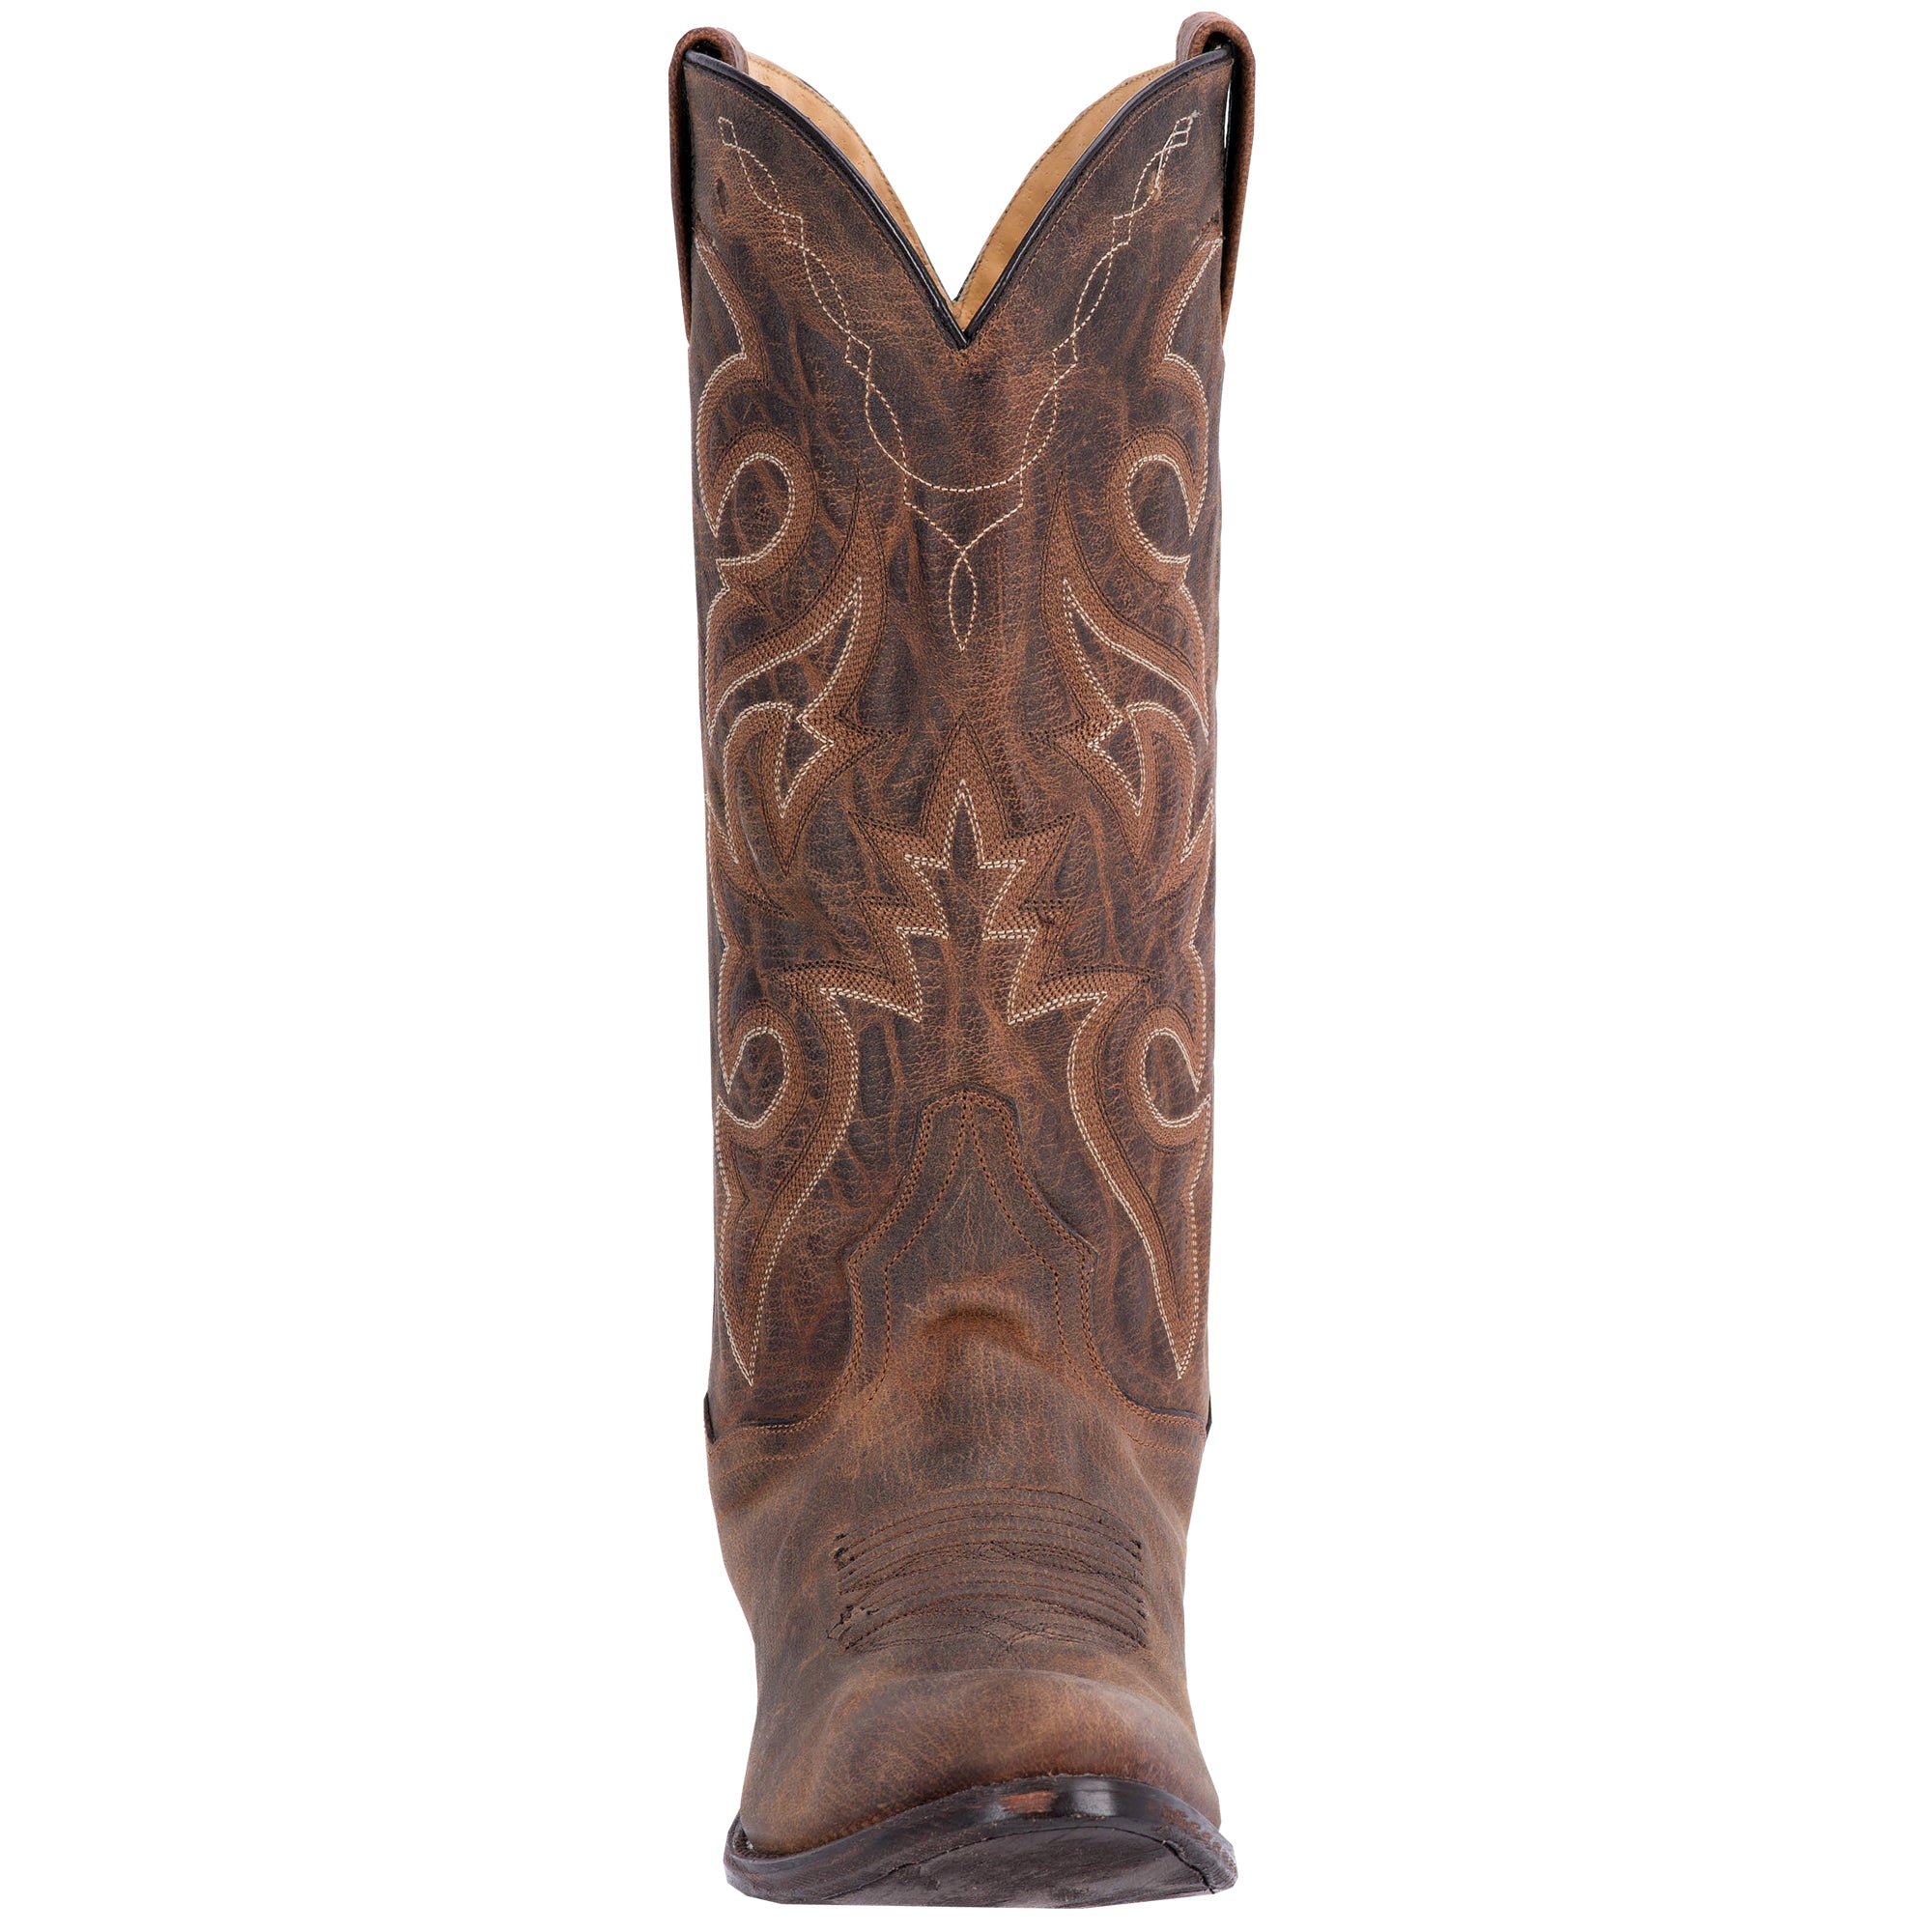 RENEGADE LEATHER BOOT 4197129420842